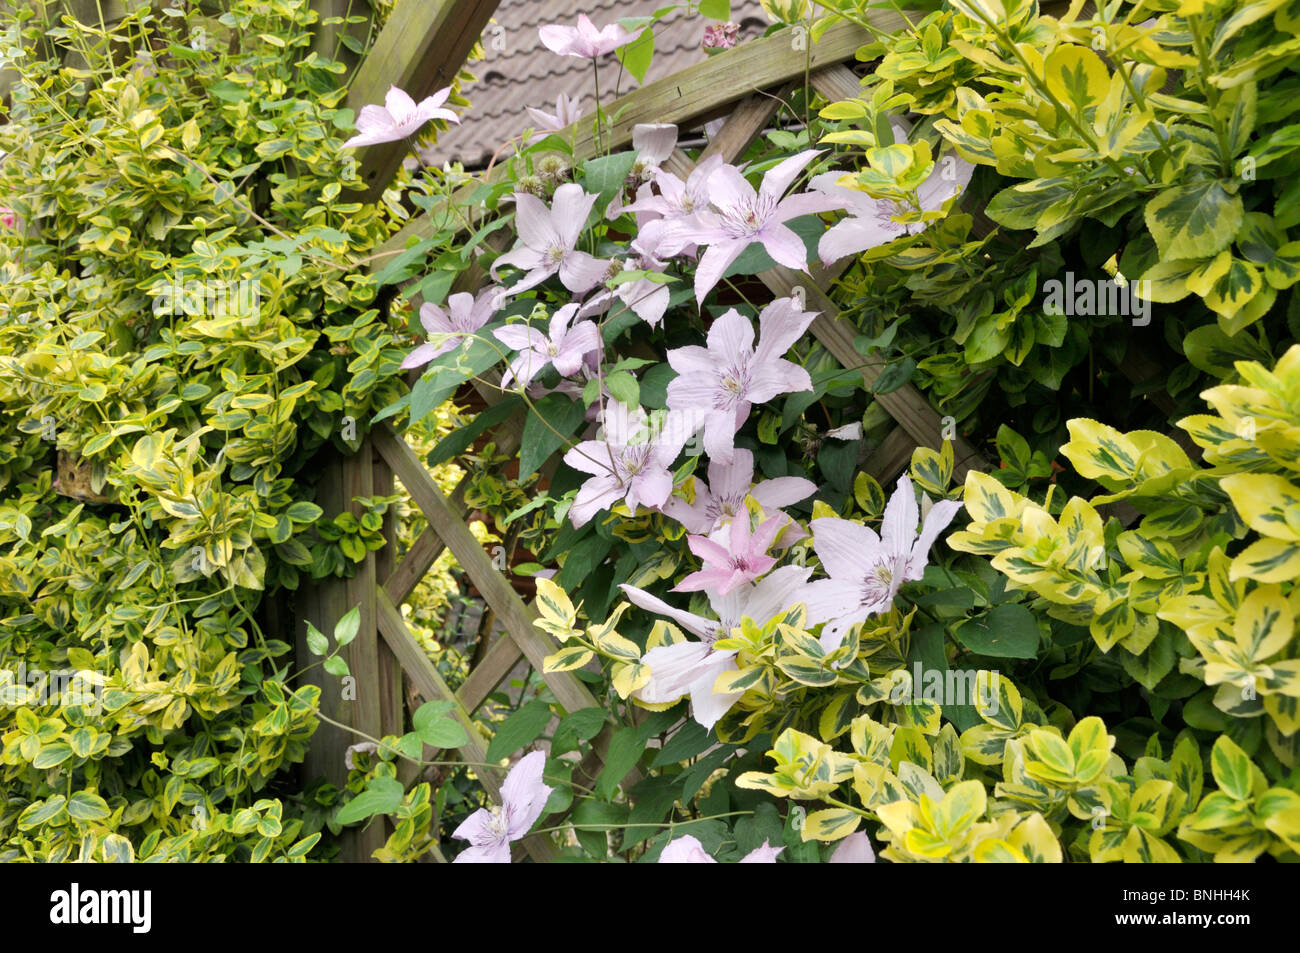 clematis clematis piilu and winter creeper euonymus fortunei stock photo royalty free image. Black Bedroom Furniture Sets. Home Design Ideas